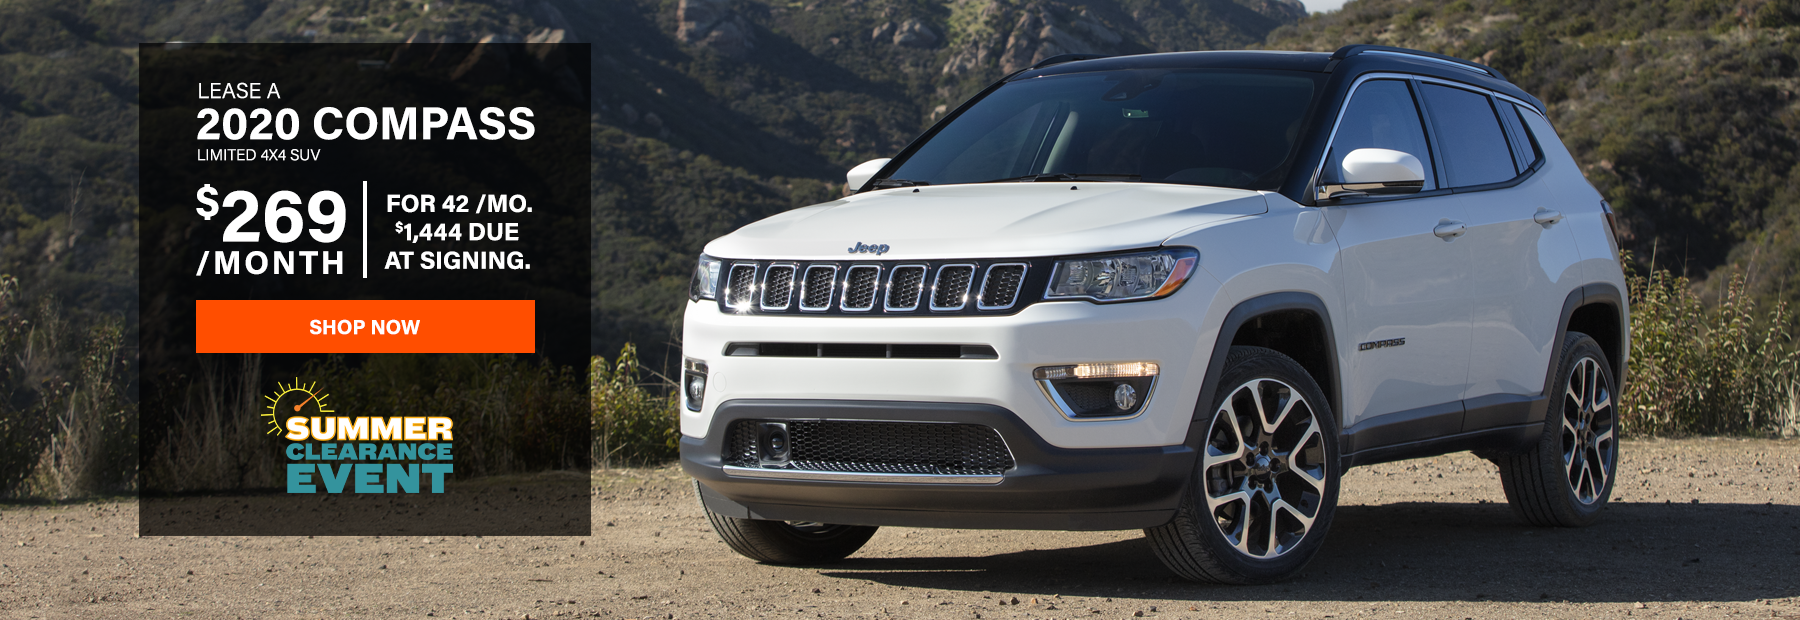 Lease a 2020 Jeep Compass Limited 4x4 SUV